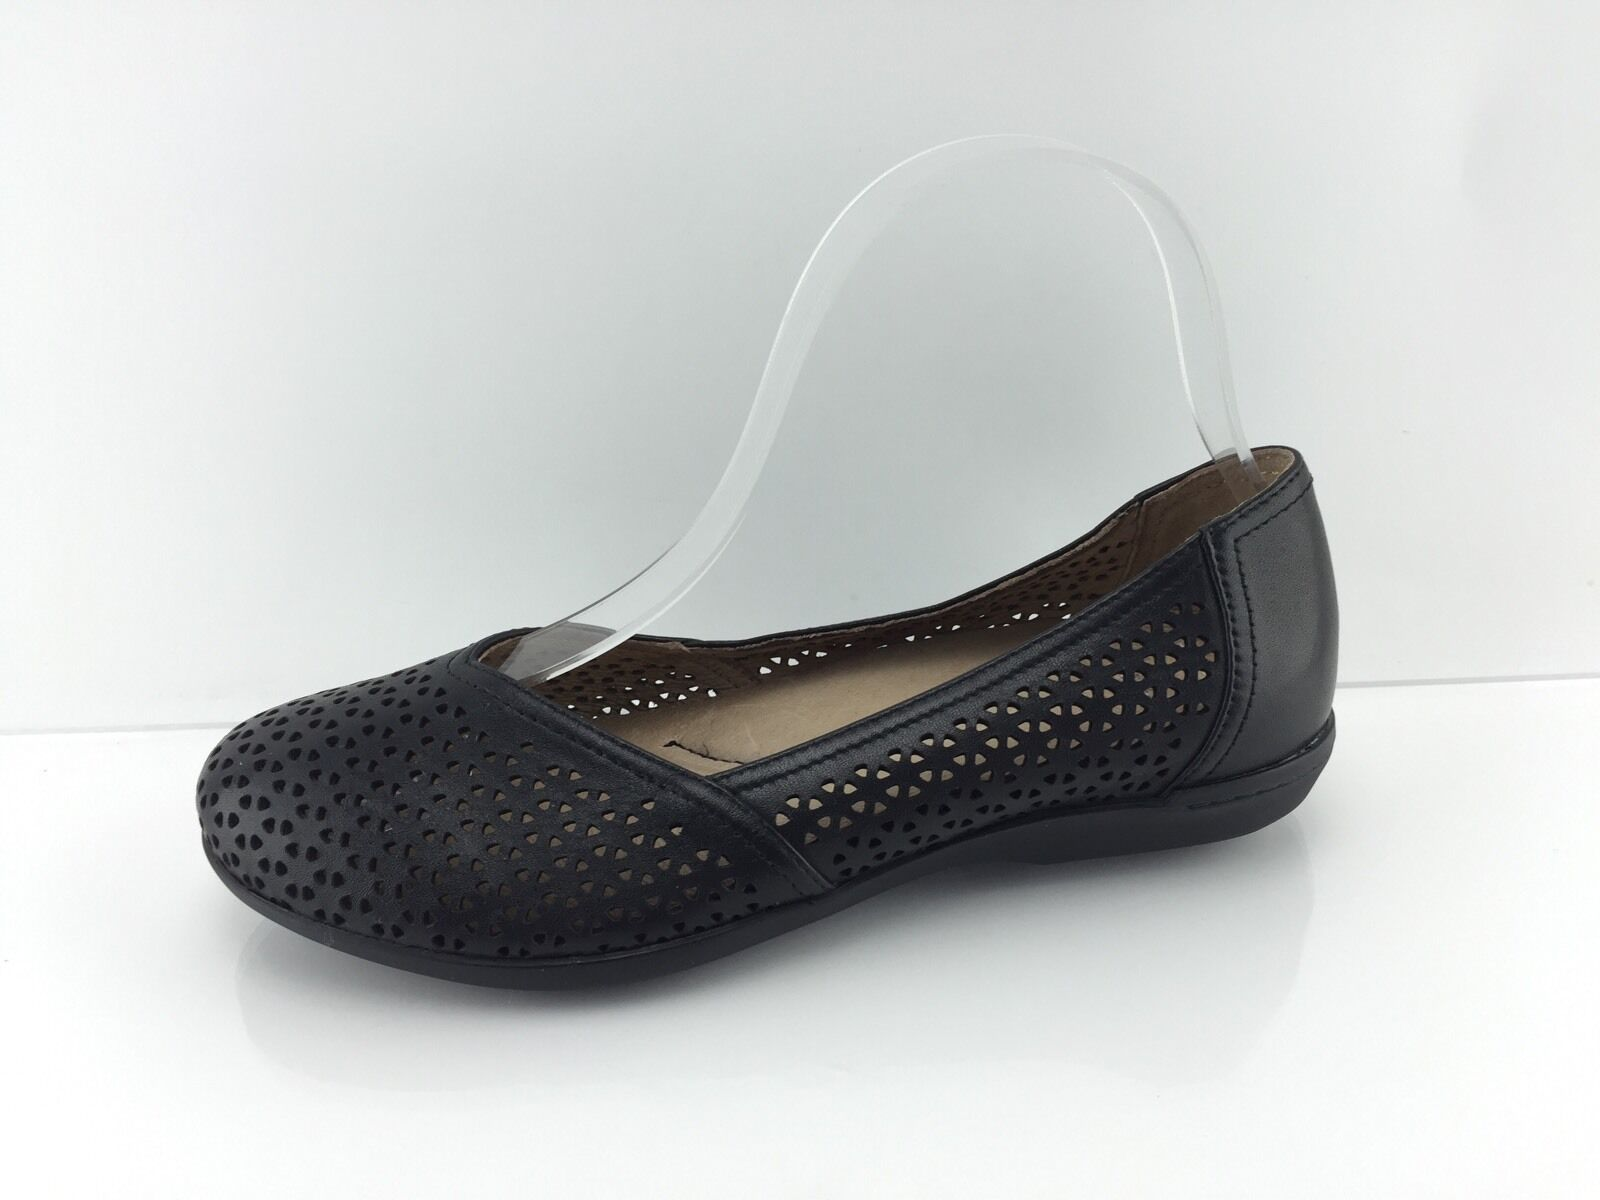 144.95 Dansko Women's Black Leather Flats 36